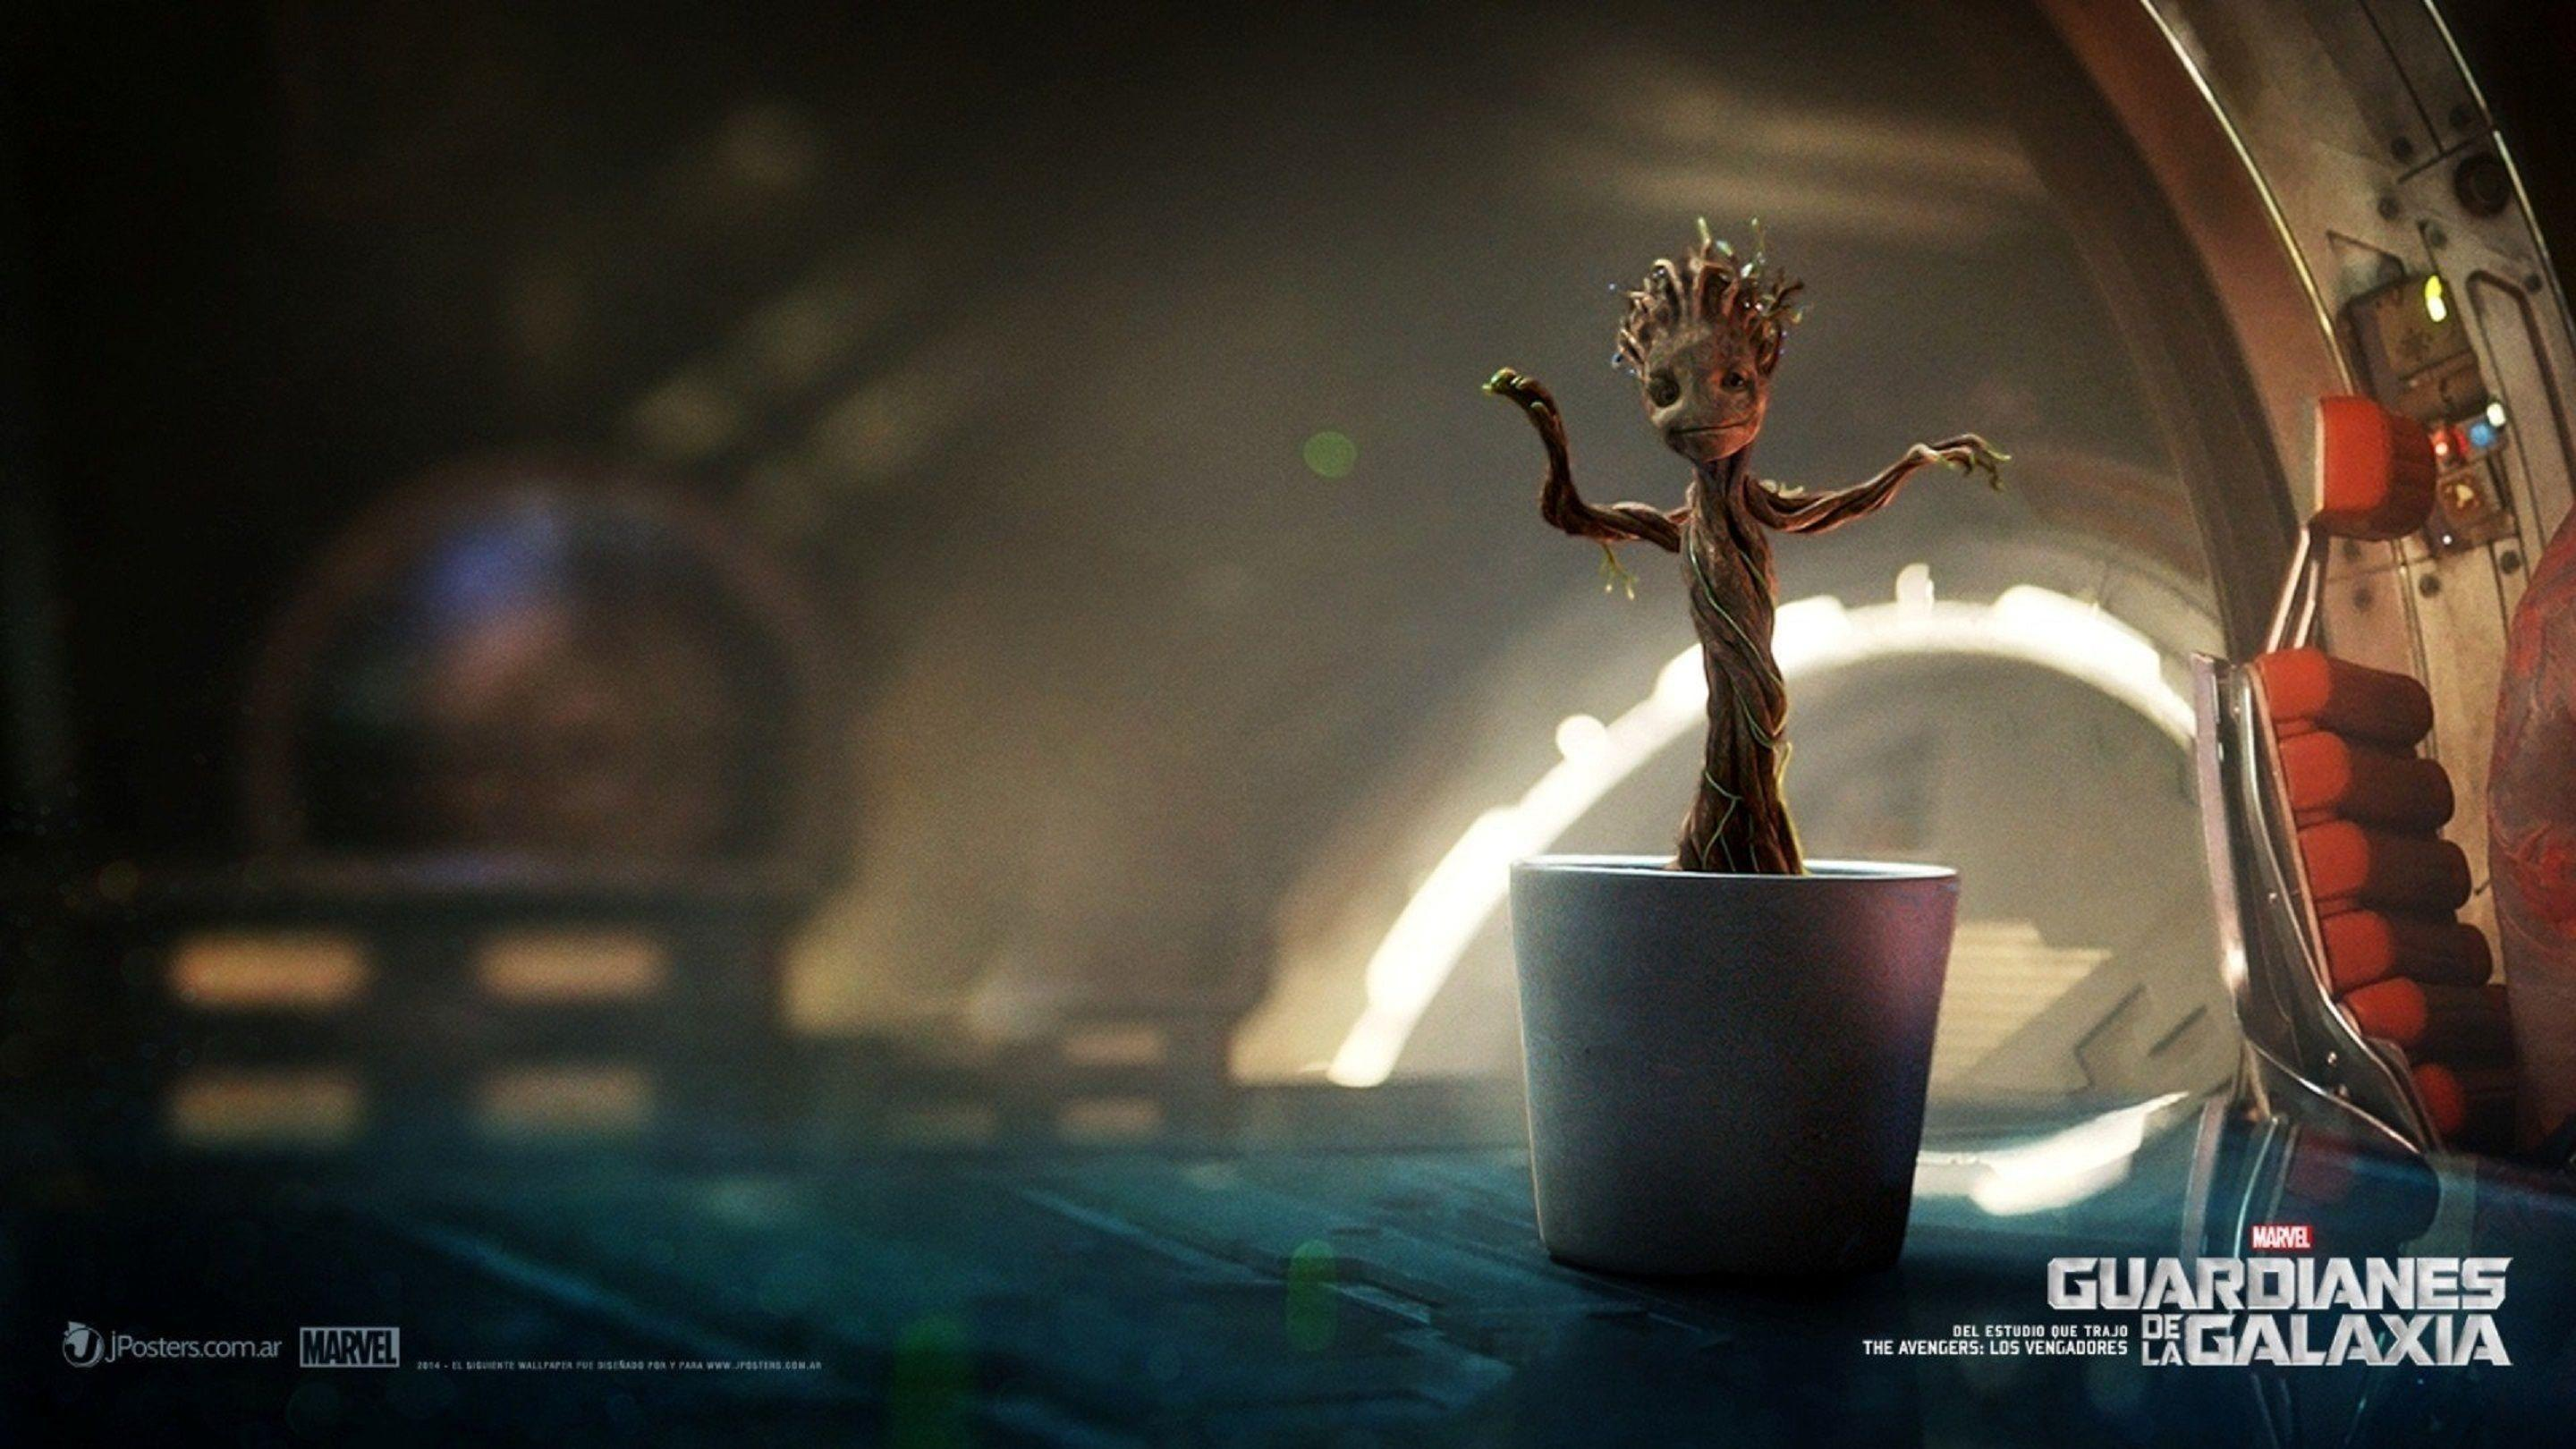 Guardians Of The Galaxy Baby Groot Wallpaper | HD Wallpapers (High ...